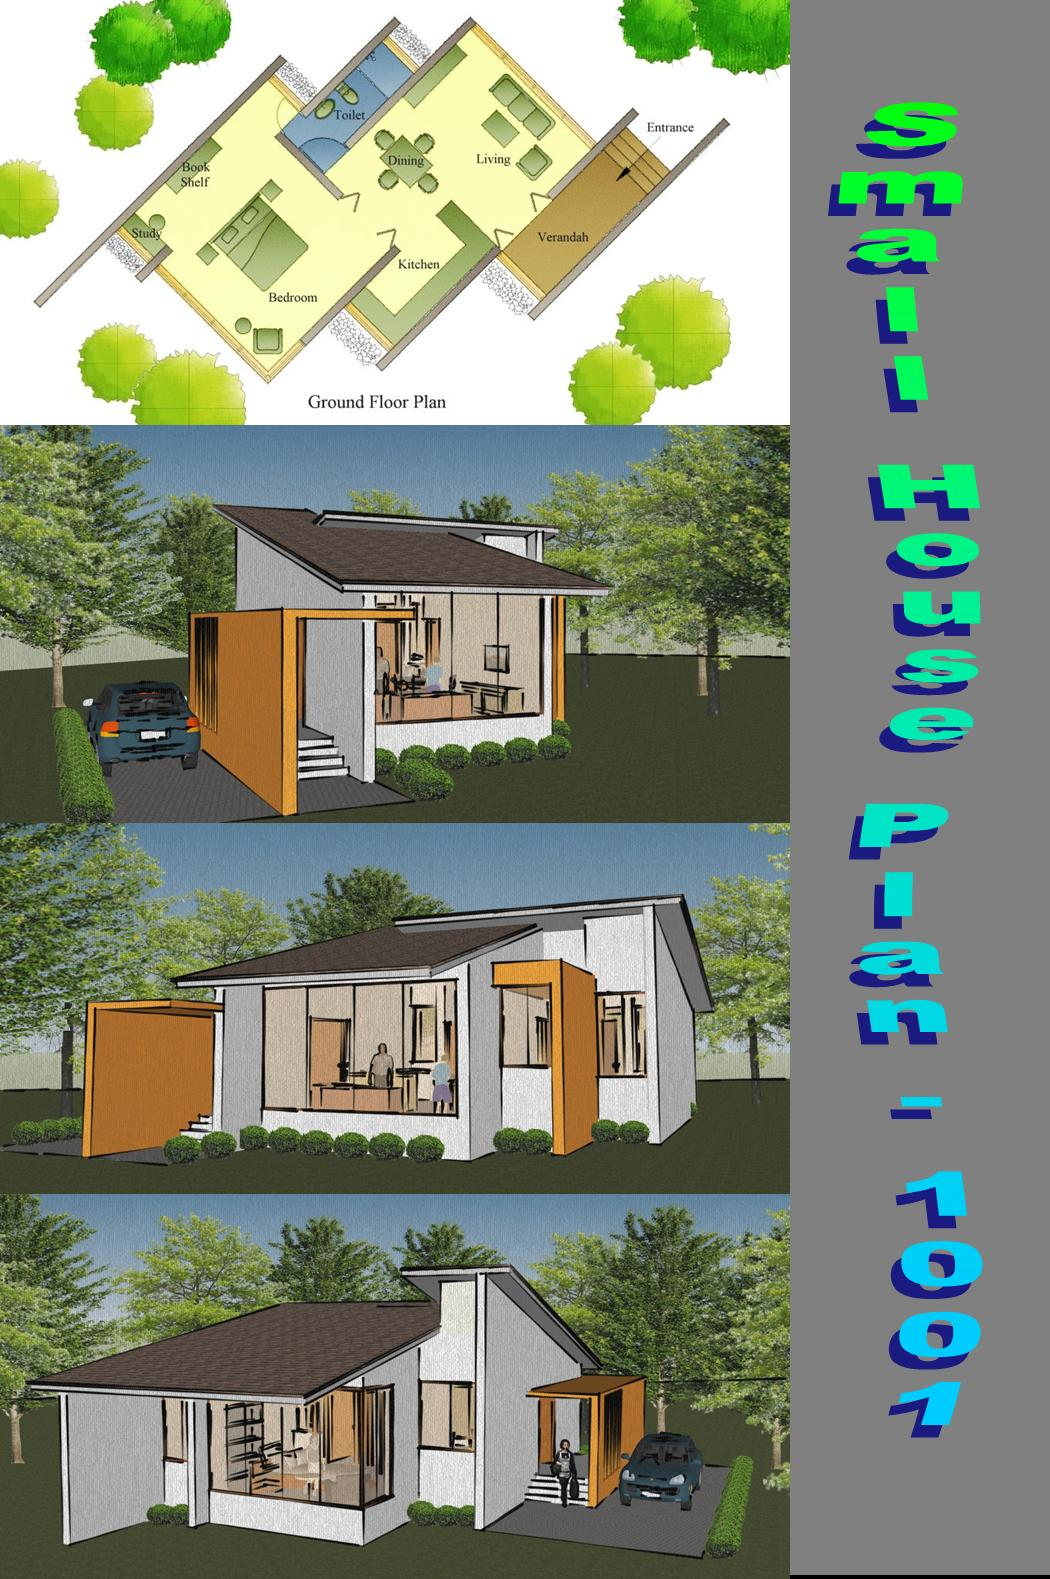 Home plans in india 5 best small home plans from for Housing plan in india